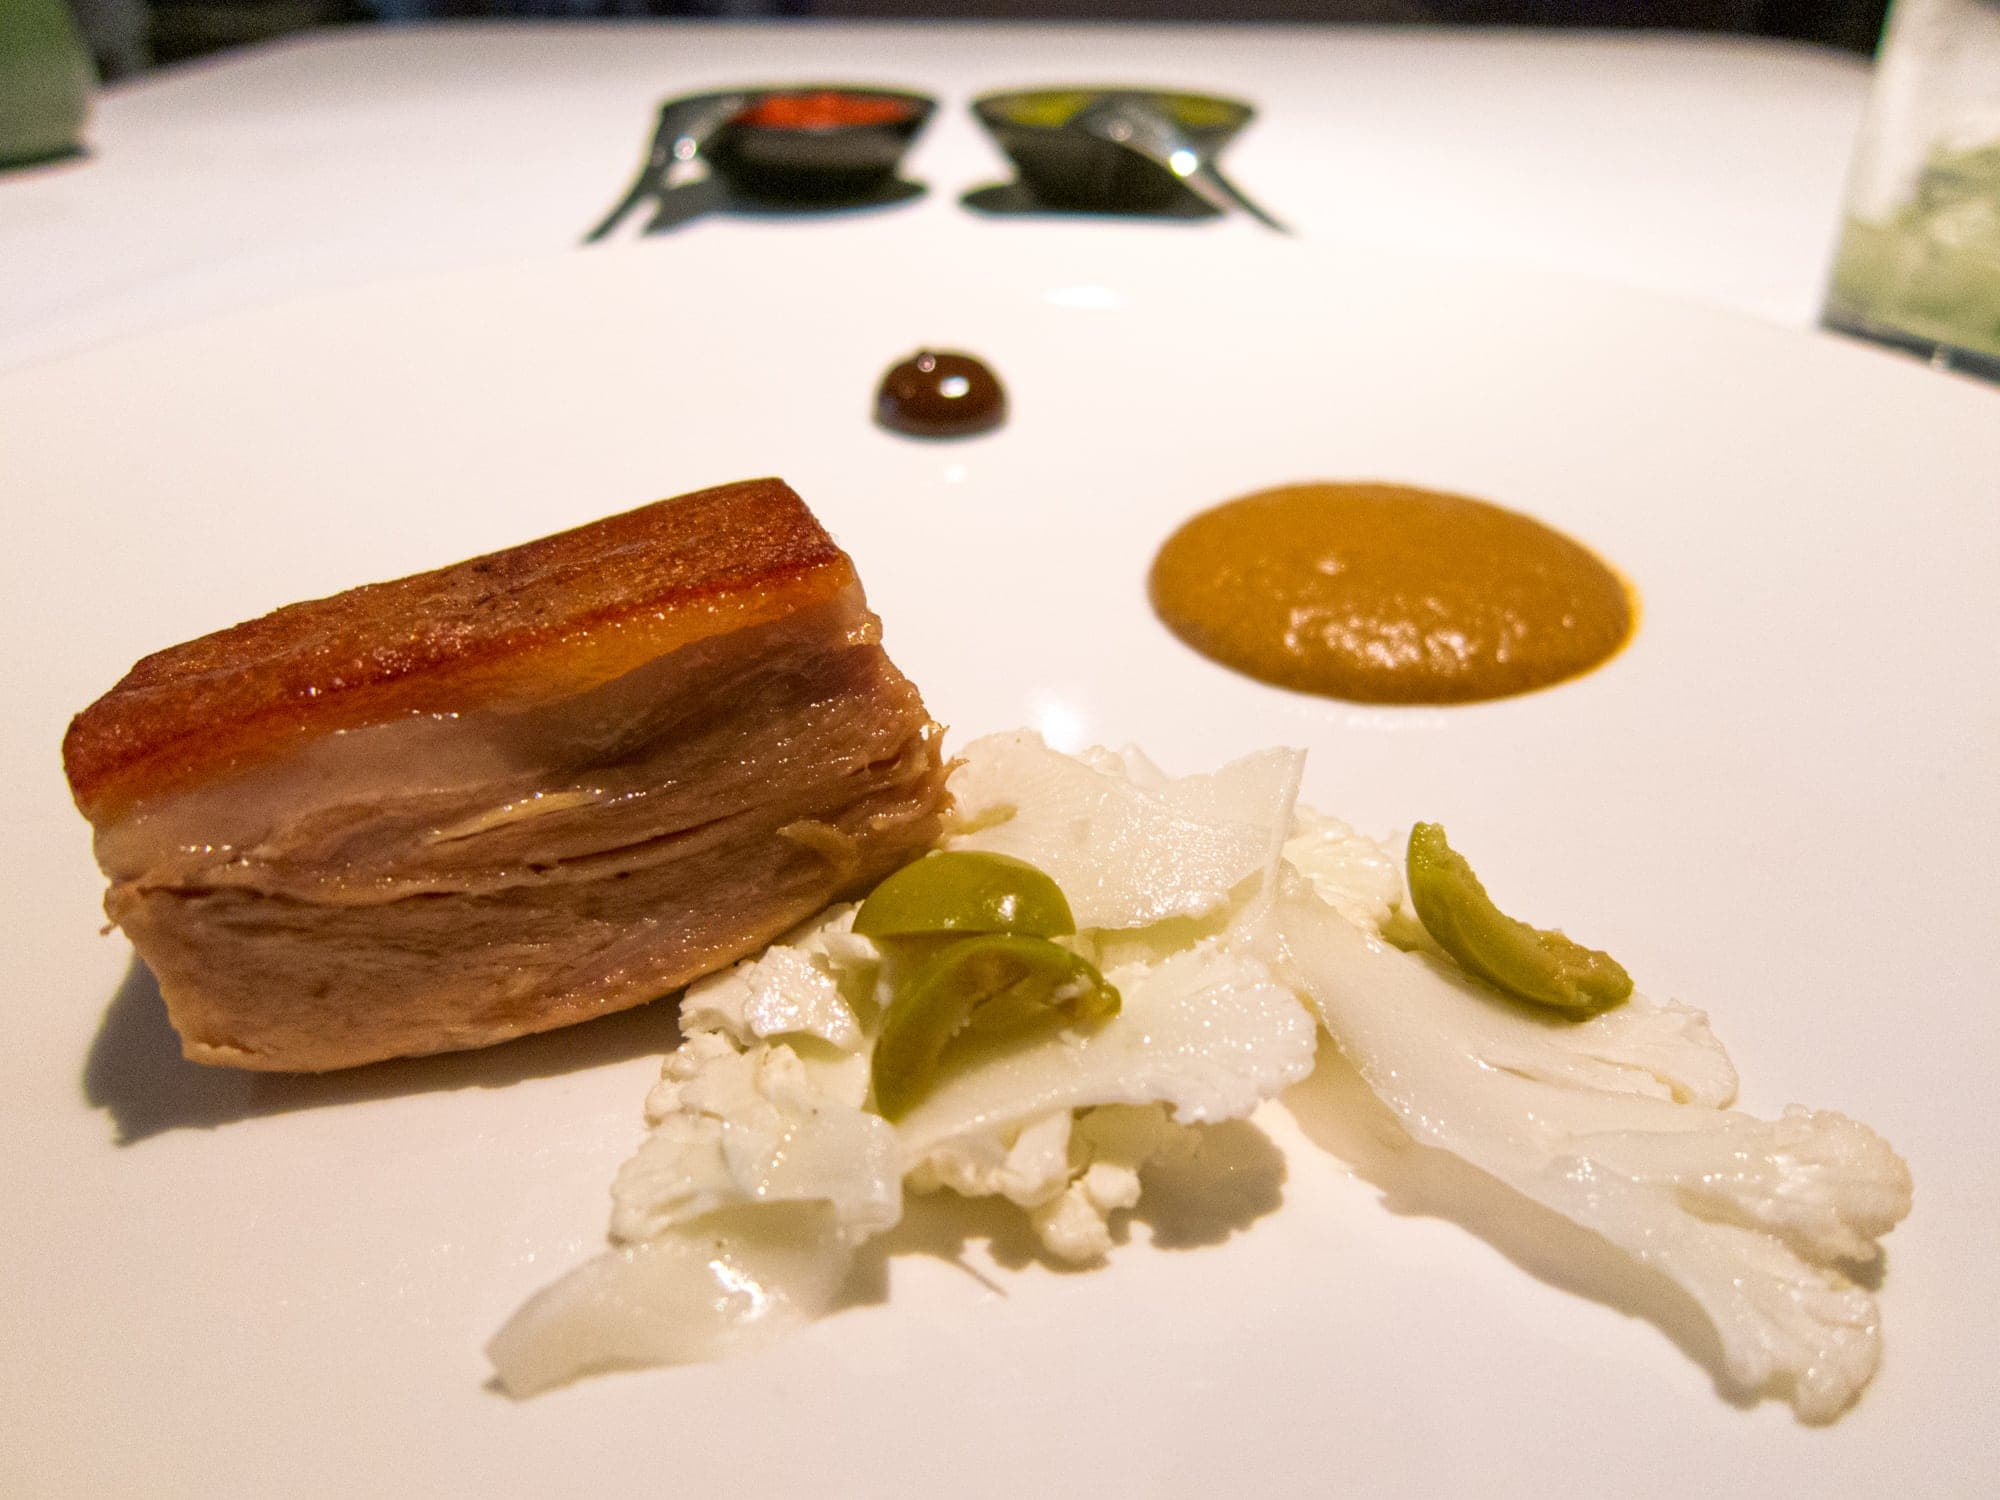 Pork confit, mole, tamarind, and white cabbage